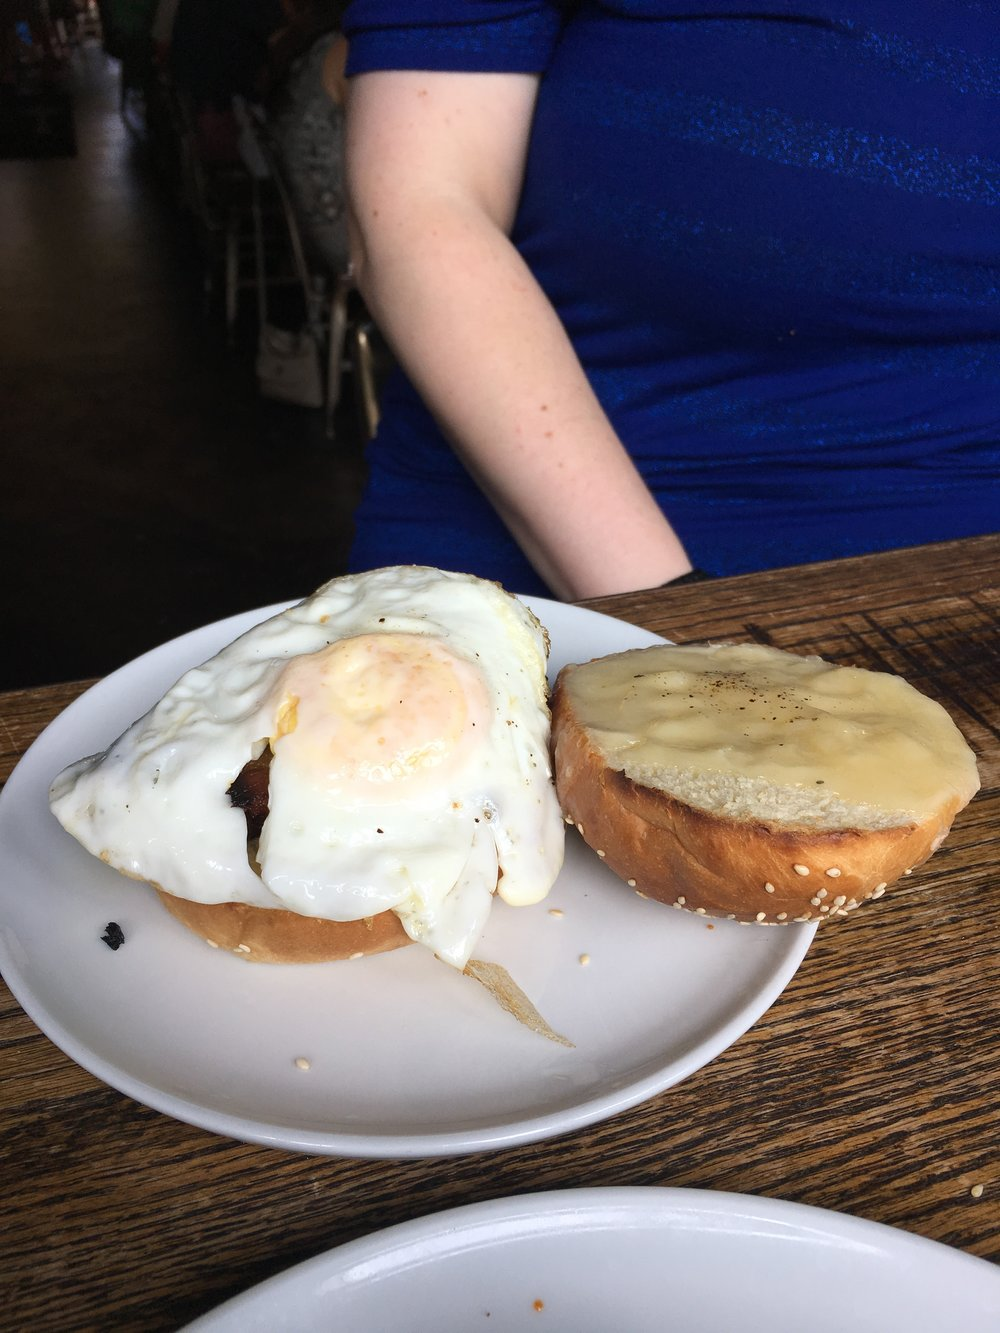 #BEC - Bacon, egg, and cheeseIt's good, but a hashtag in the name doesn't make it anything special. Your average bacon, egg, and cheese, that you could get cheaper and better at Laurel Market, or another breakfast spot.